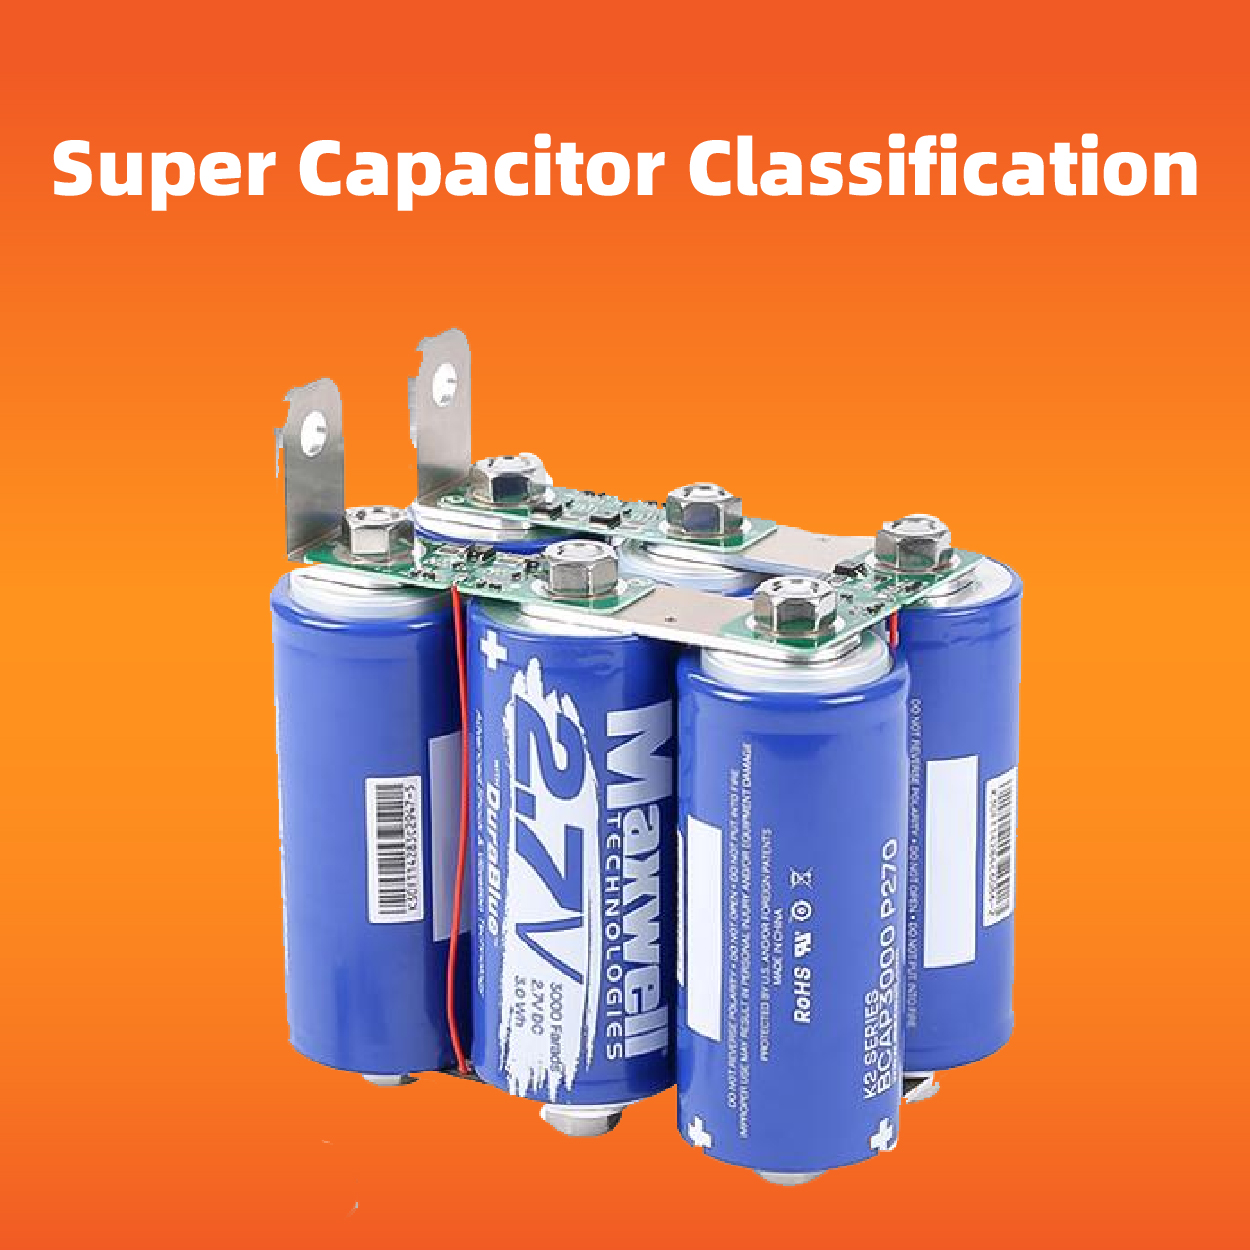 Super Capacitor Classification